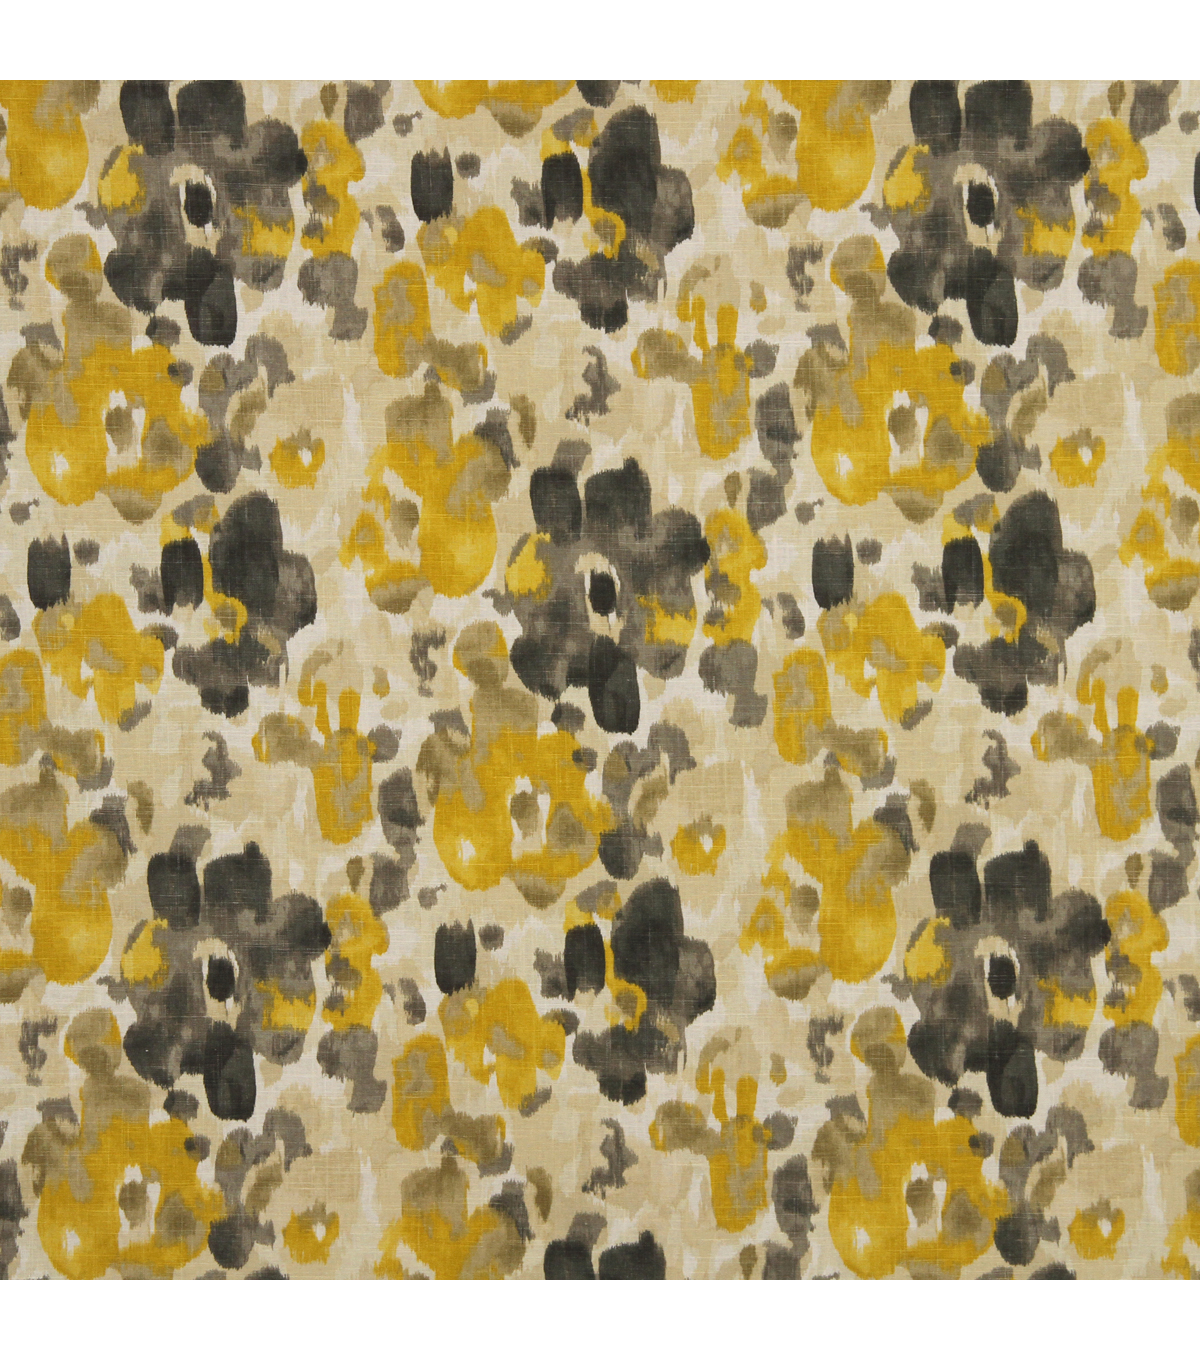 Home Decor 8\u0022x8\u0022 Fabric Swatch-Landsmeer / Citrine